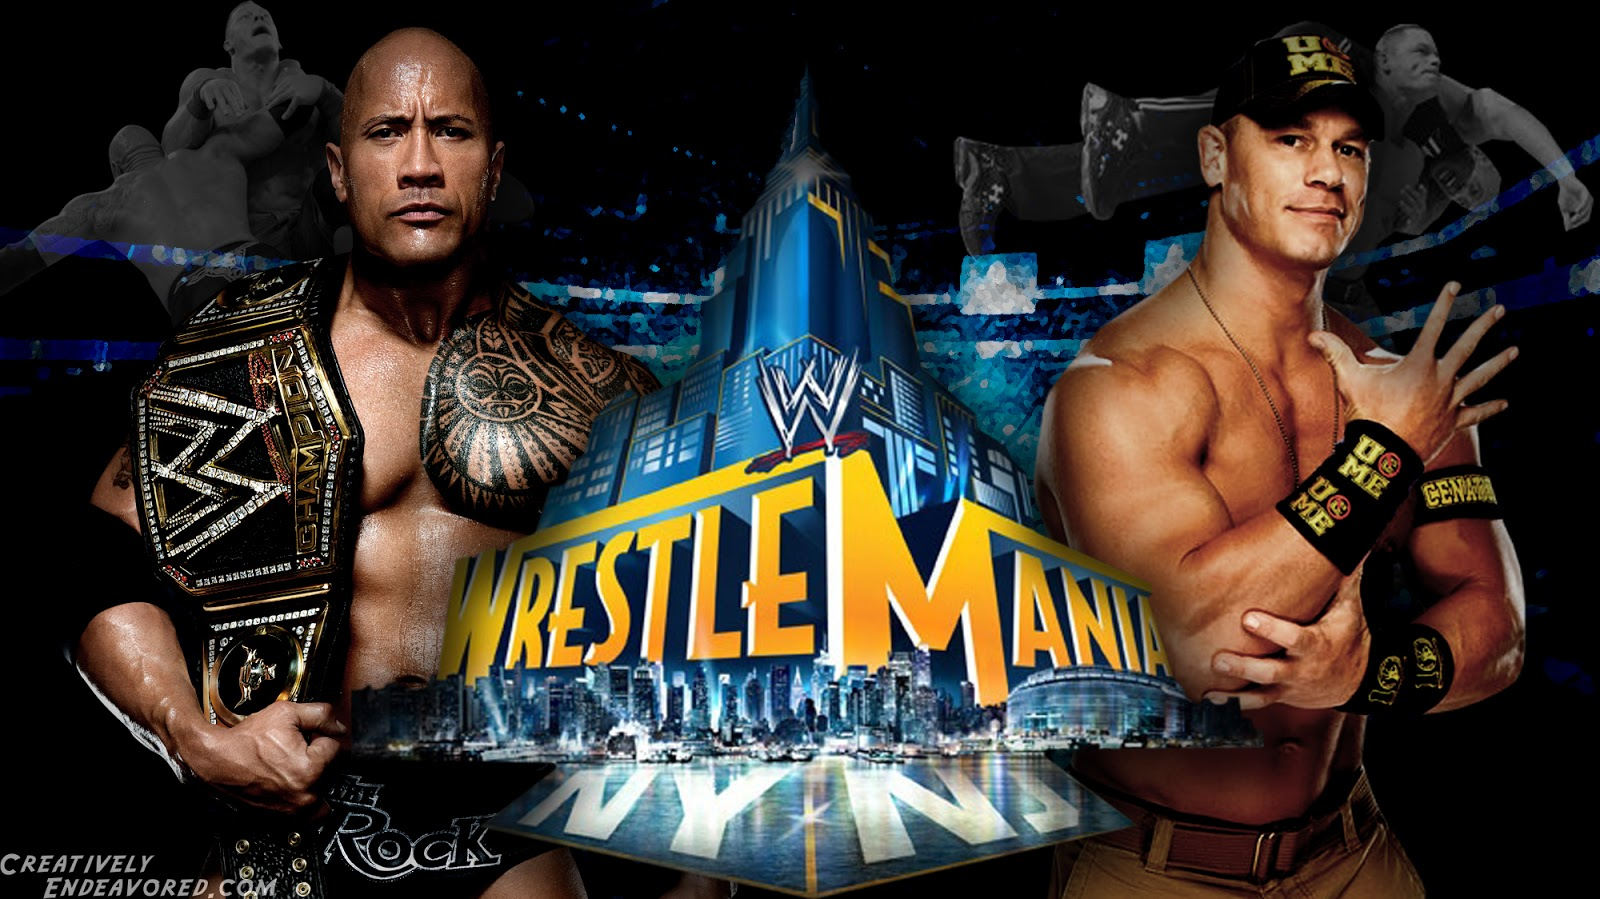 WrestleMania 29 The Rock and John Cena High Quality Wallpaper